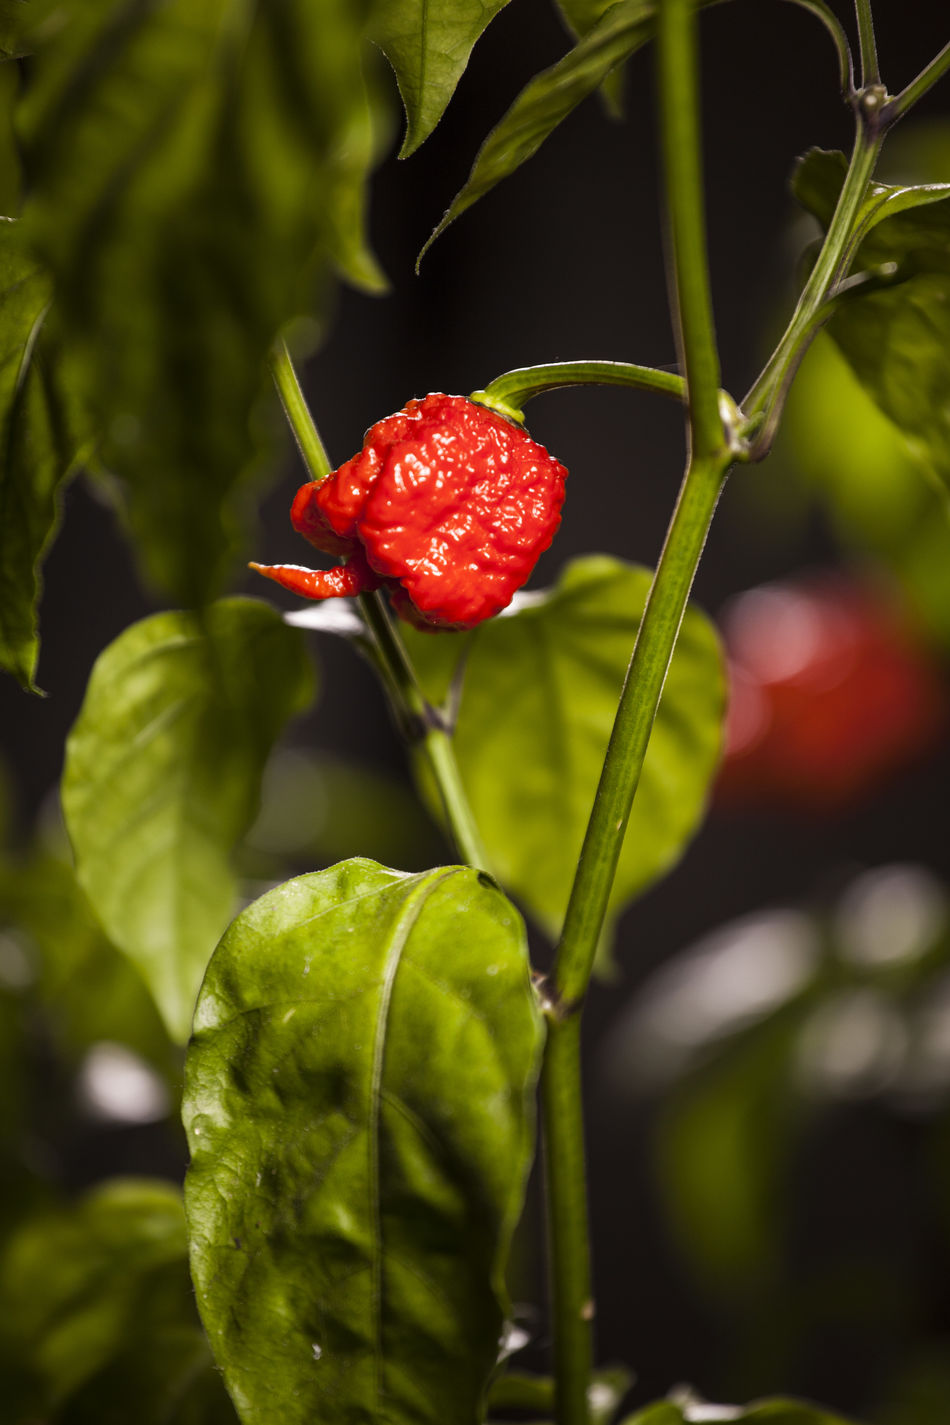 Agriculture Carolina Reaper Close-up Day Focus On Foreground Freshness Fruit Green Color Growth Hot Pepper Hot Peppers Plants Leaf Nature No People Outdoors Red